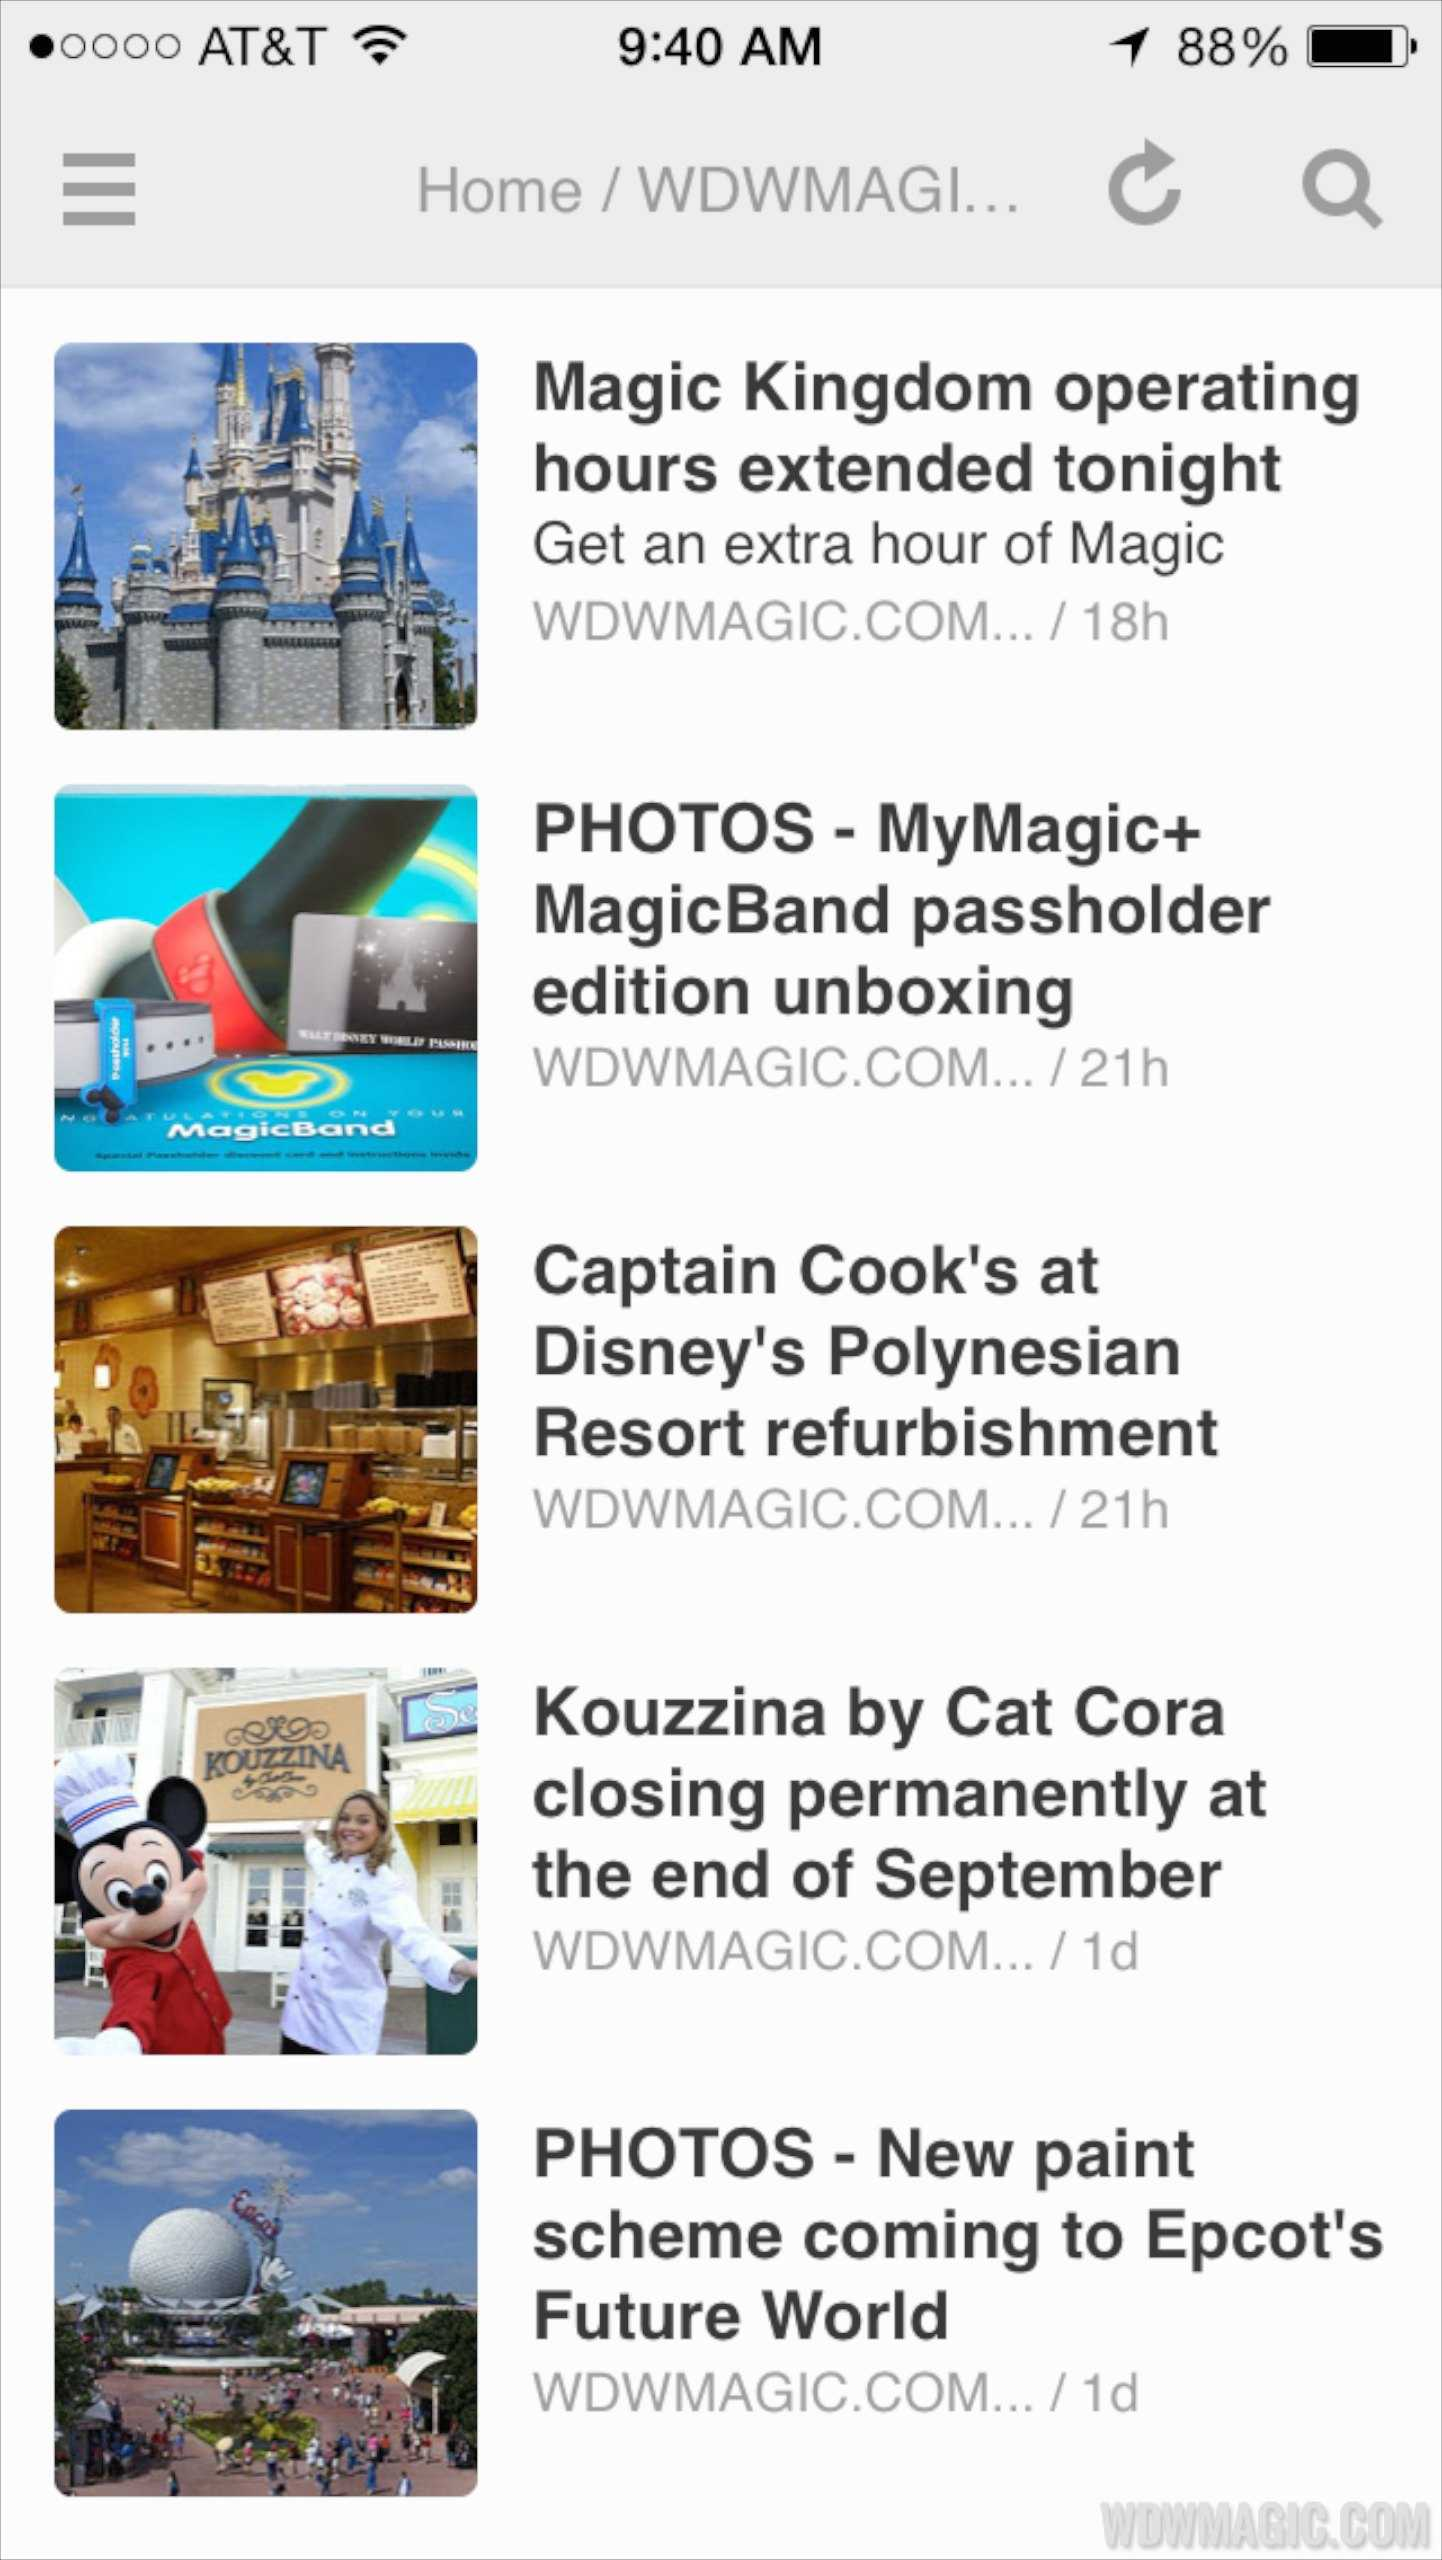 WDWMAGIC on Feedly via RSS